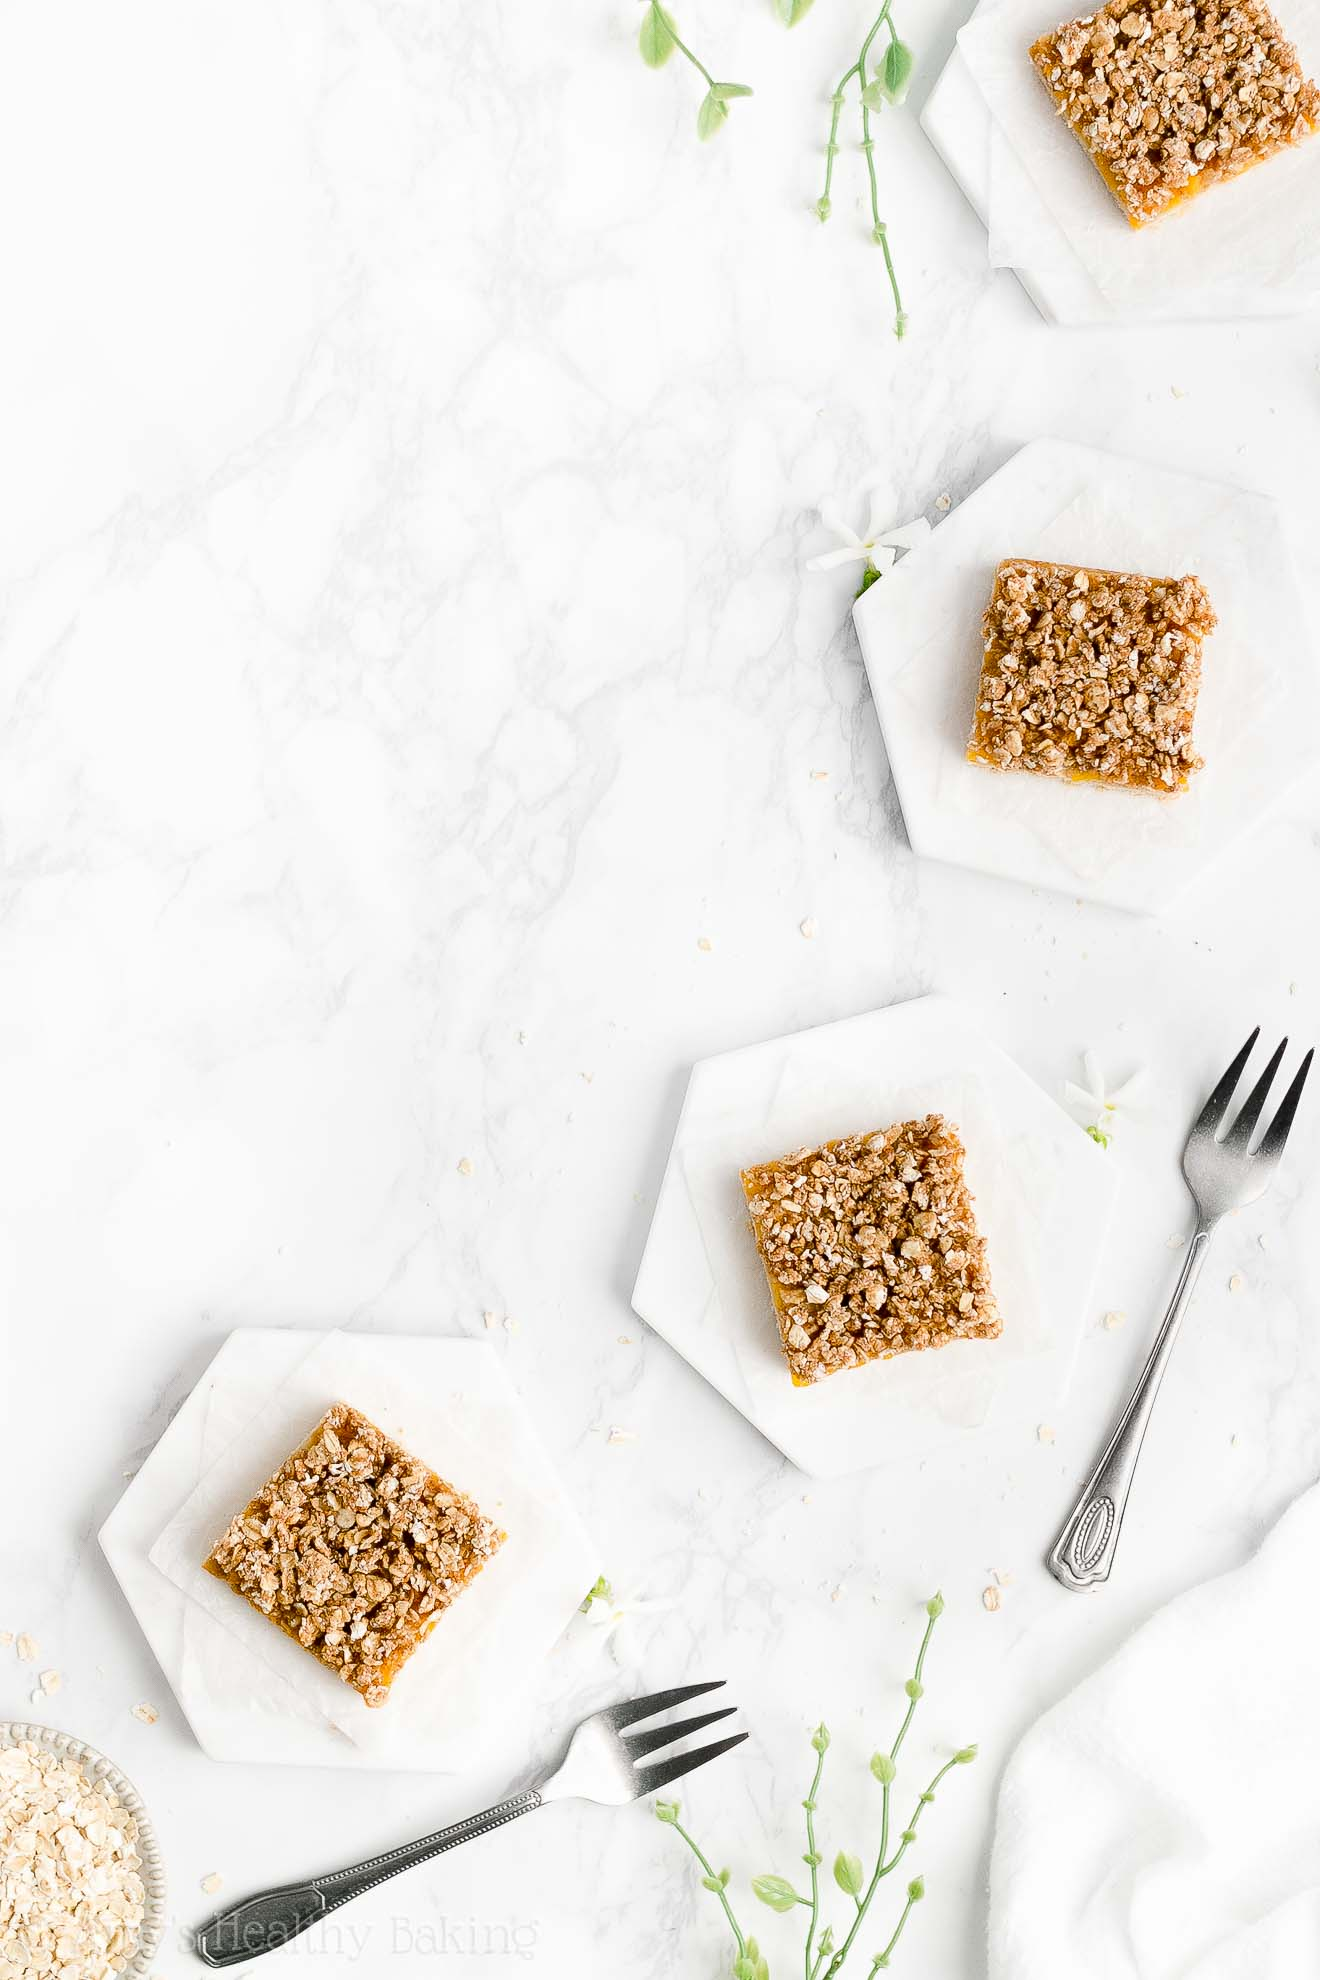 Best Easy Healthy Low Sugar Peach Oatmeal Crumble Bars with Canned Peaches